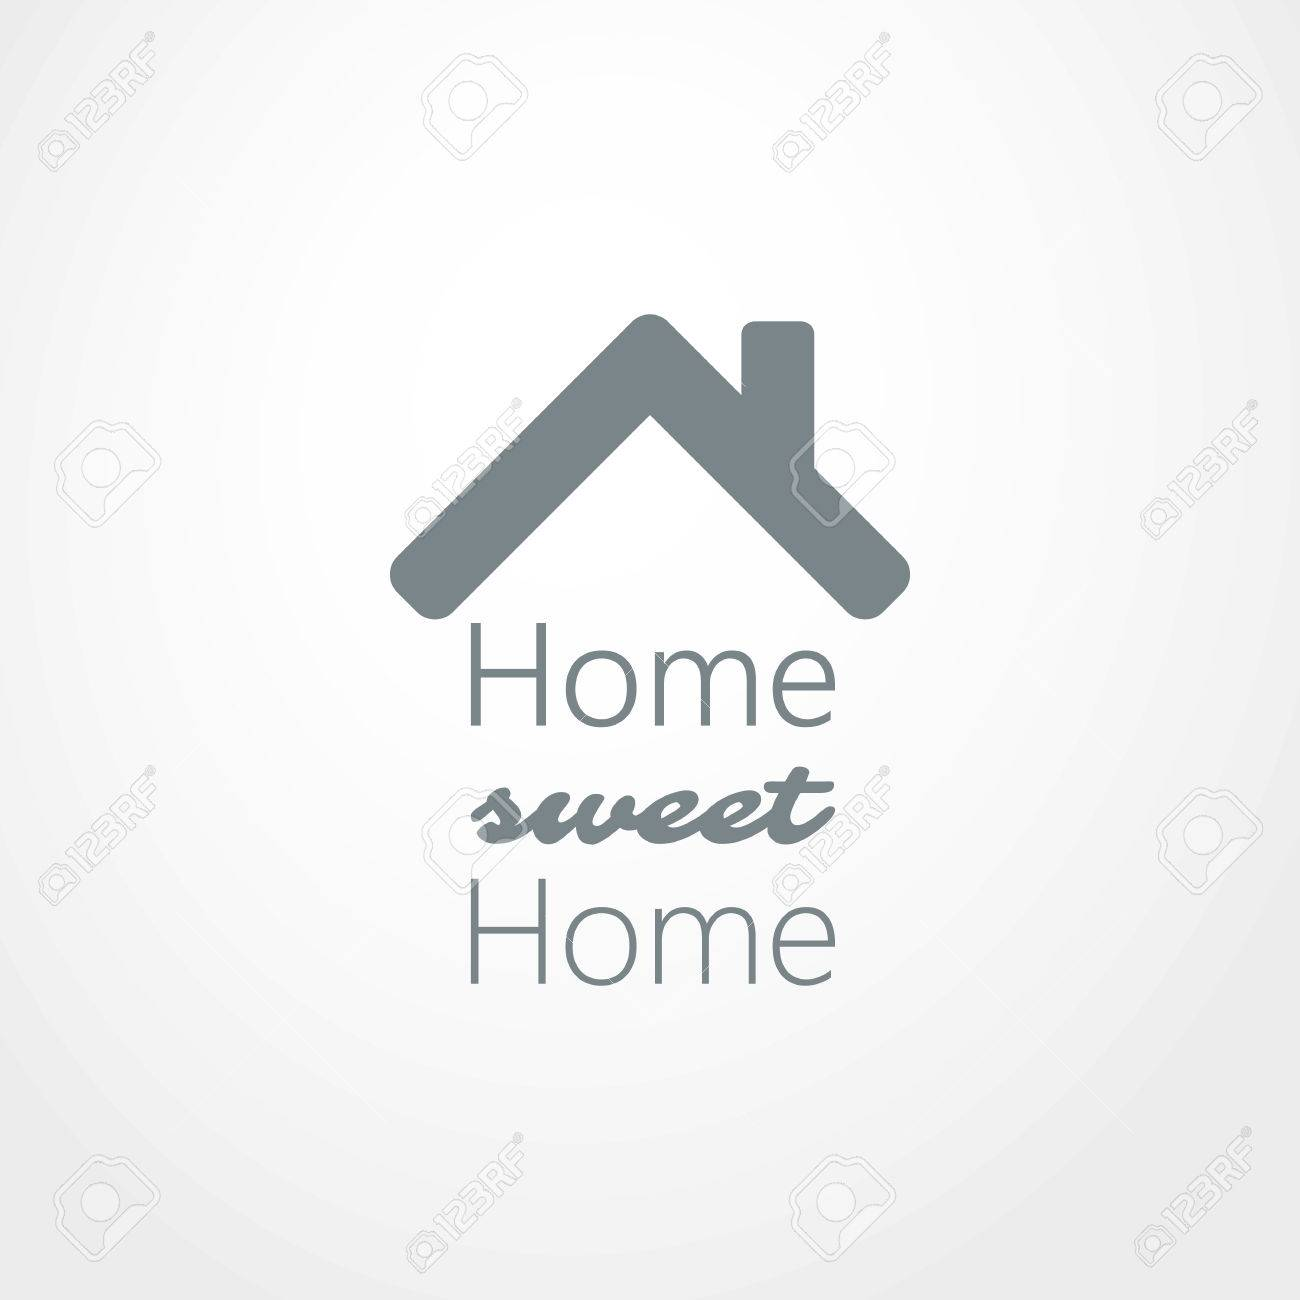 Home, Sweet Home - House Roof Icon Design Royalty Free Cliparts ...